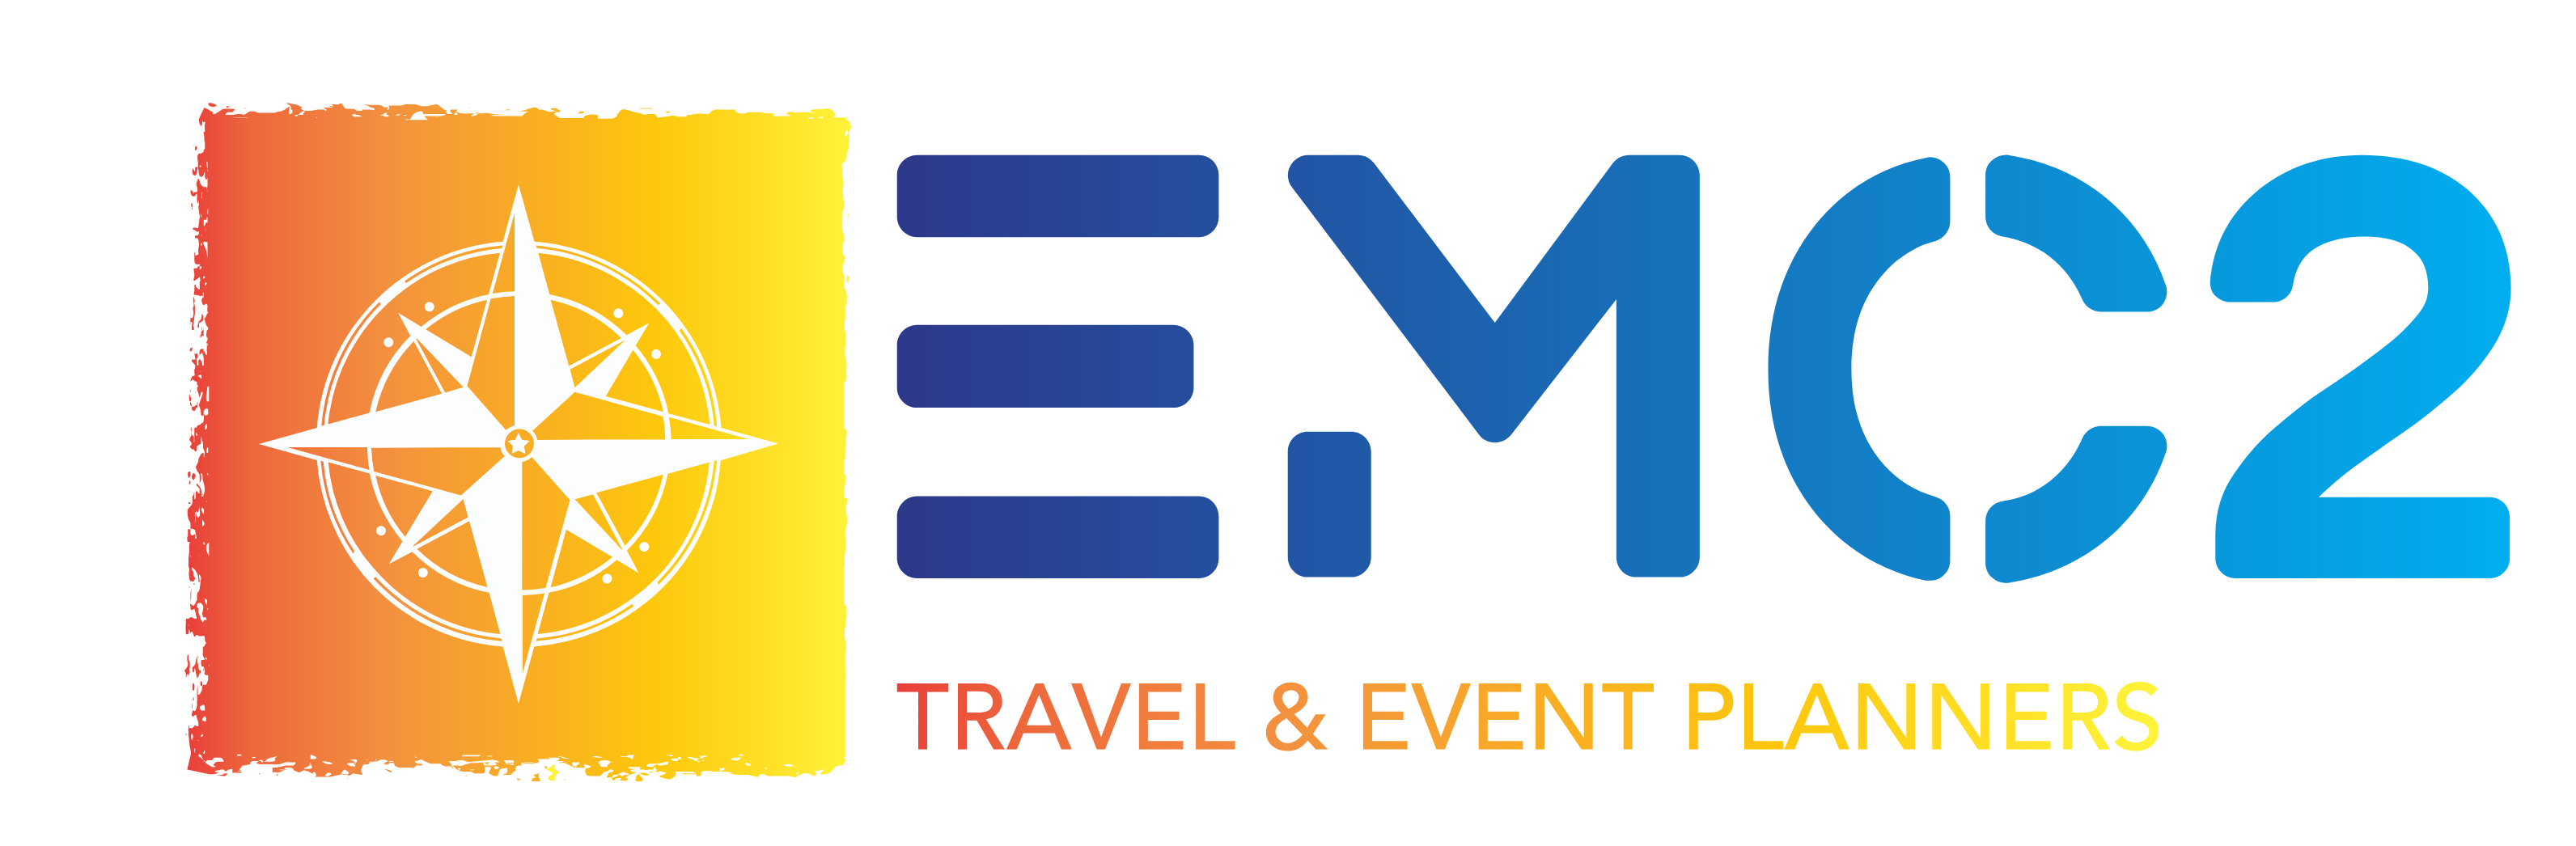 EMC2 Travel Planners